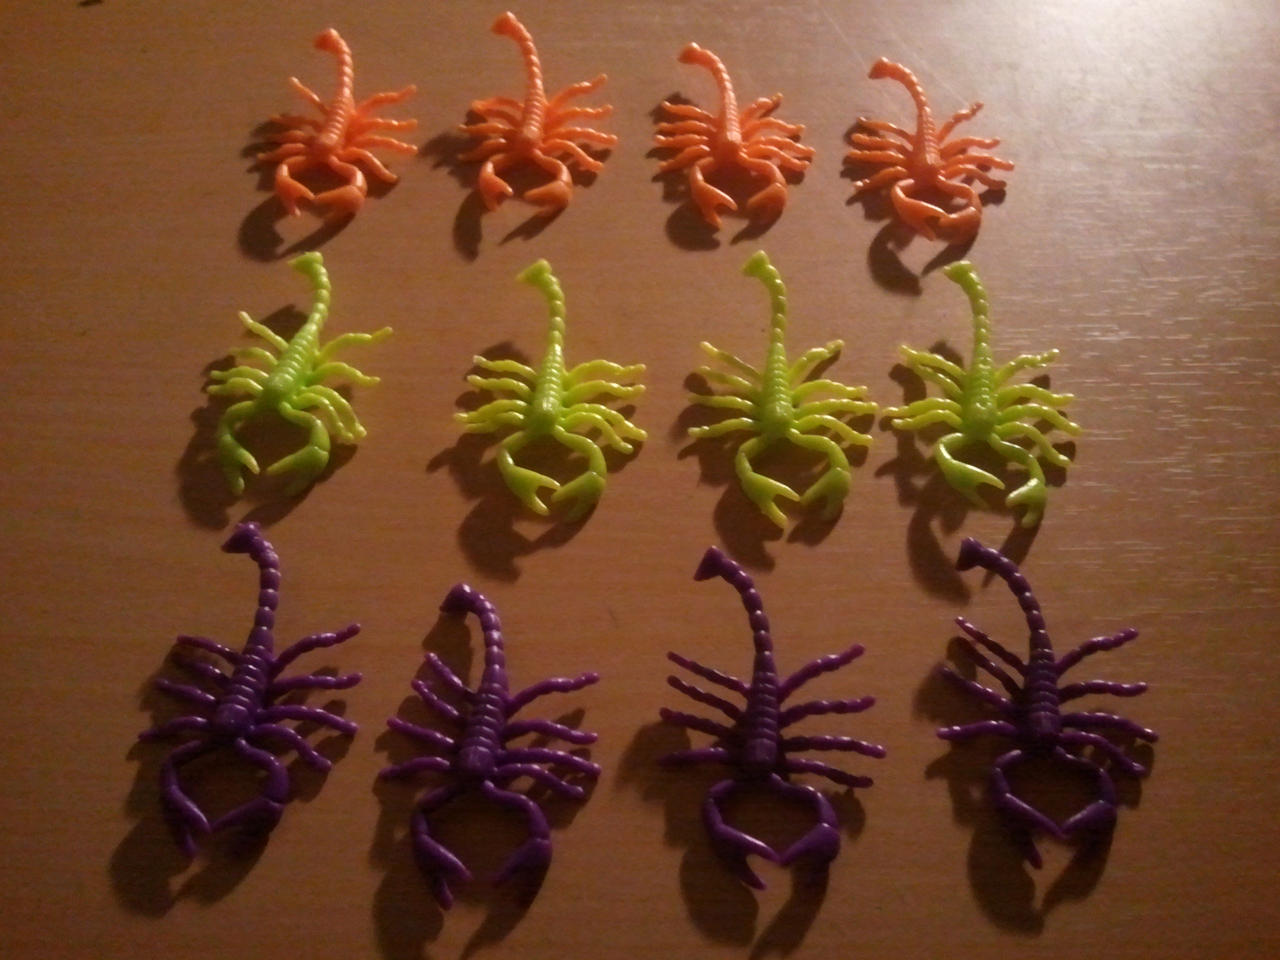 Neon Colored Scorpions by BenorianHardback26